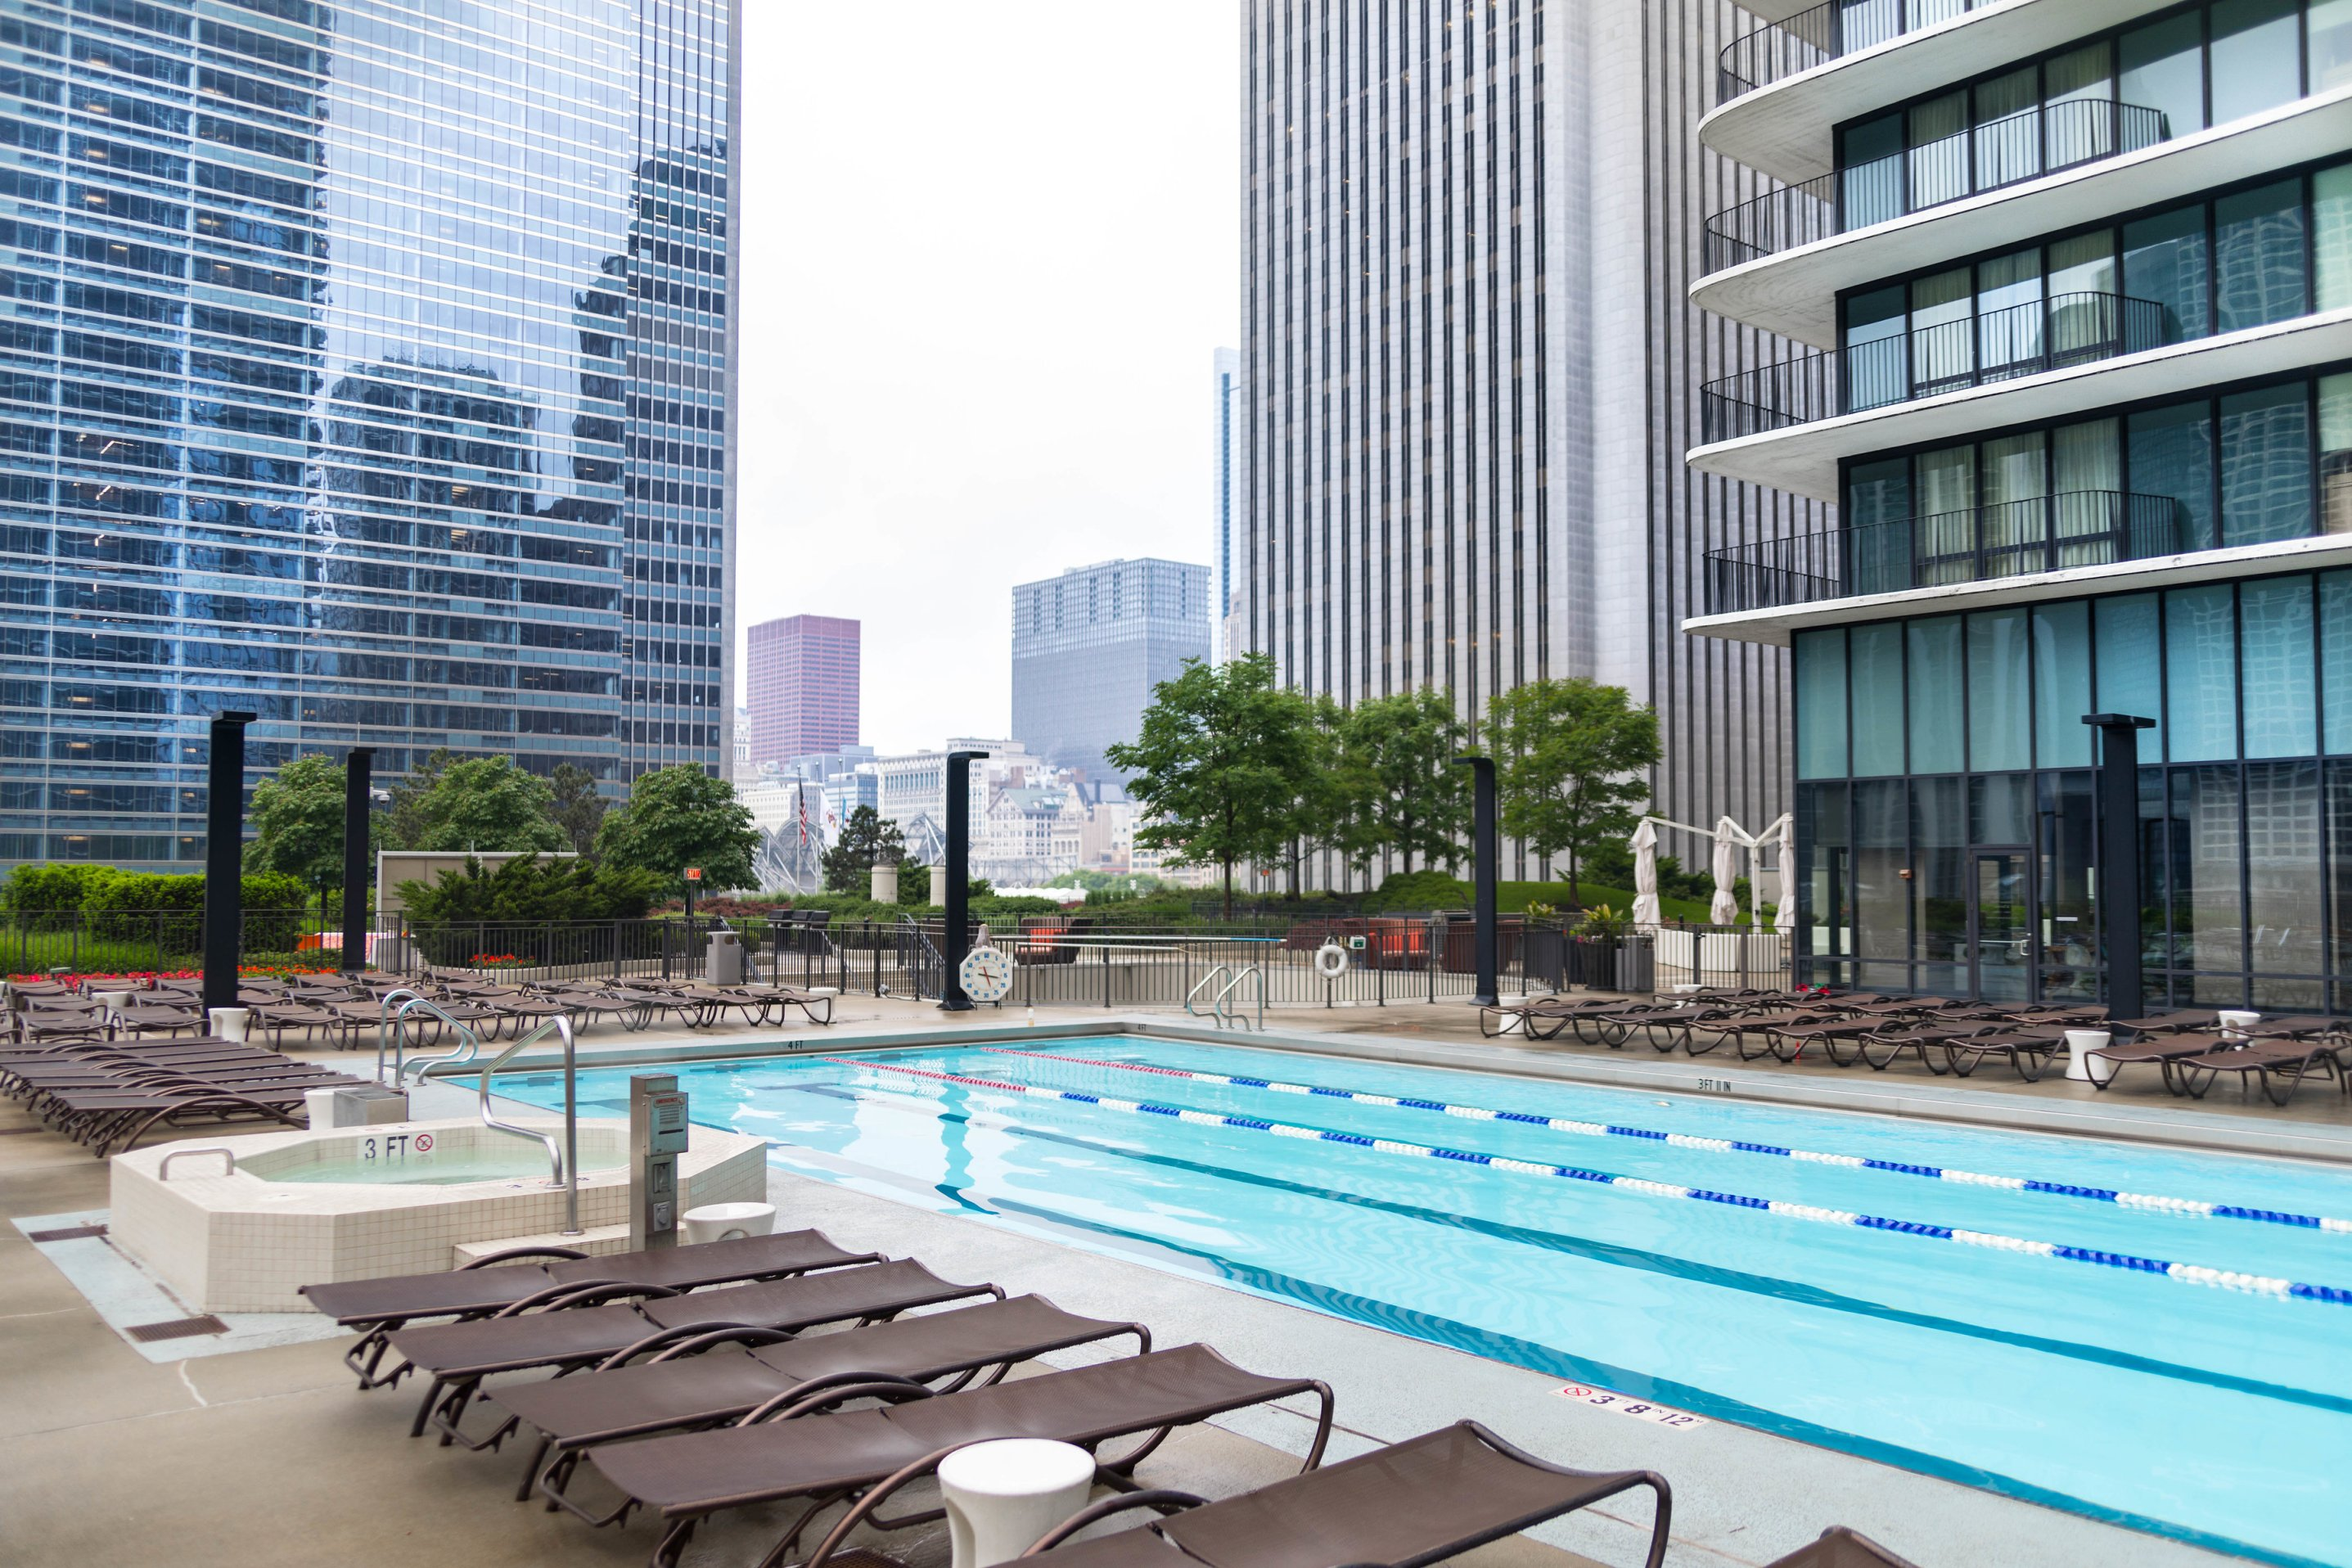 Luxury Hotels of the World: Radisson Blu Aqua Chicago